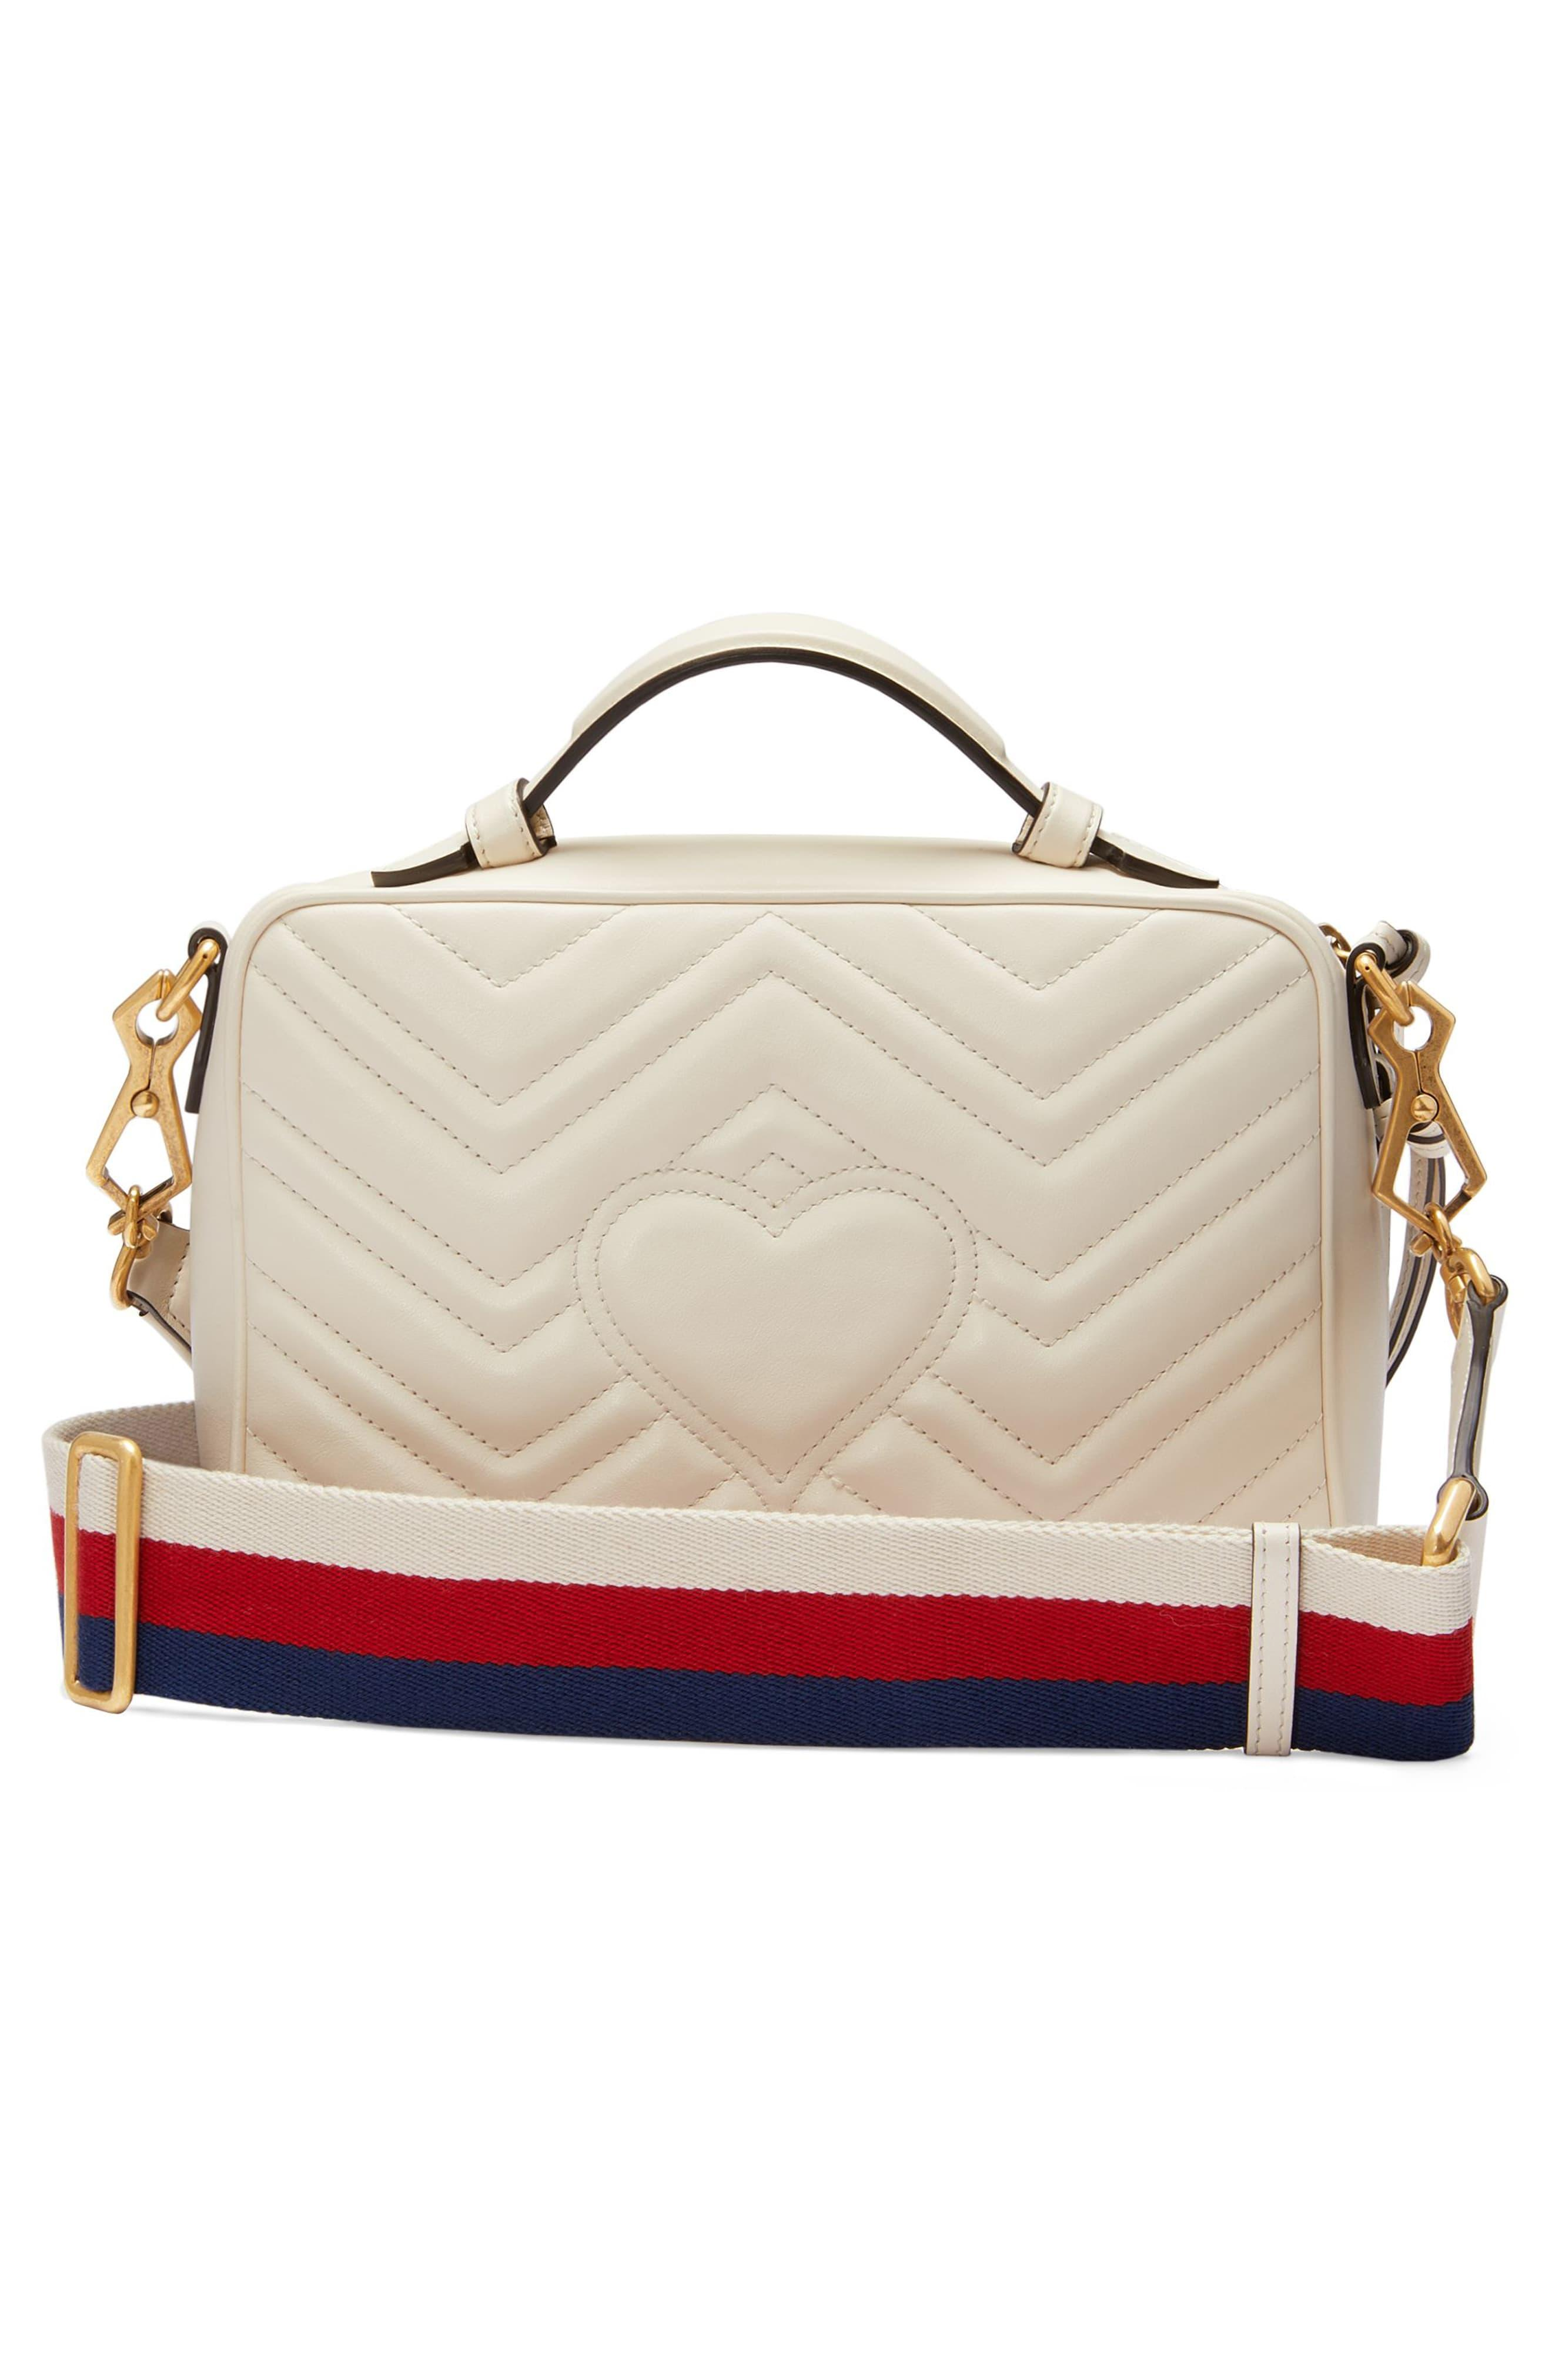 b278971271fbbb Gucci - Multicolor Small Gg Marmont 2.0 Matelassé Leather Camera Bag With  Webbed Strap - Lyst. View fullscreen